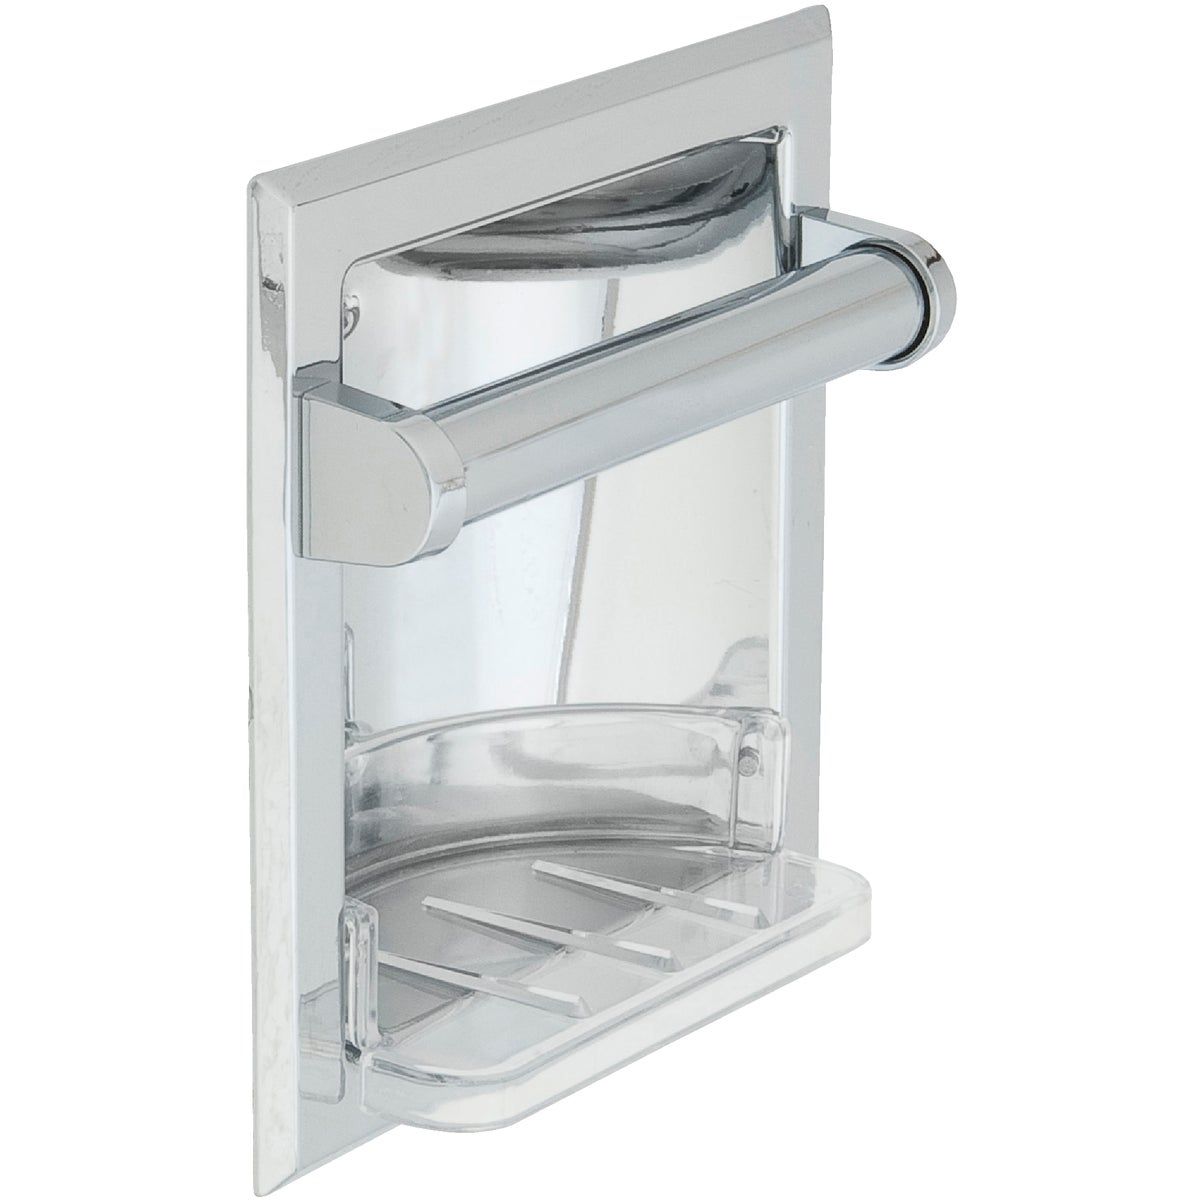 CHRME RECESSED SOAP DISH - 409374 by Do it Best